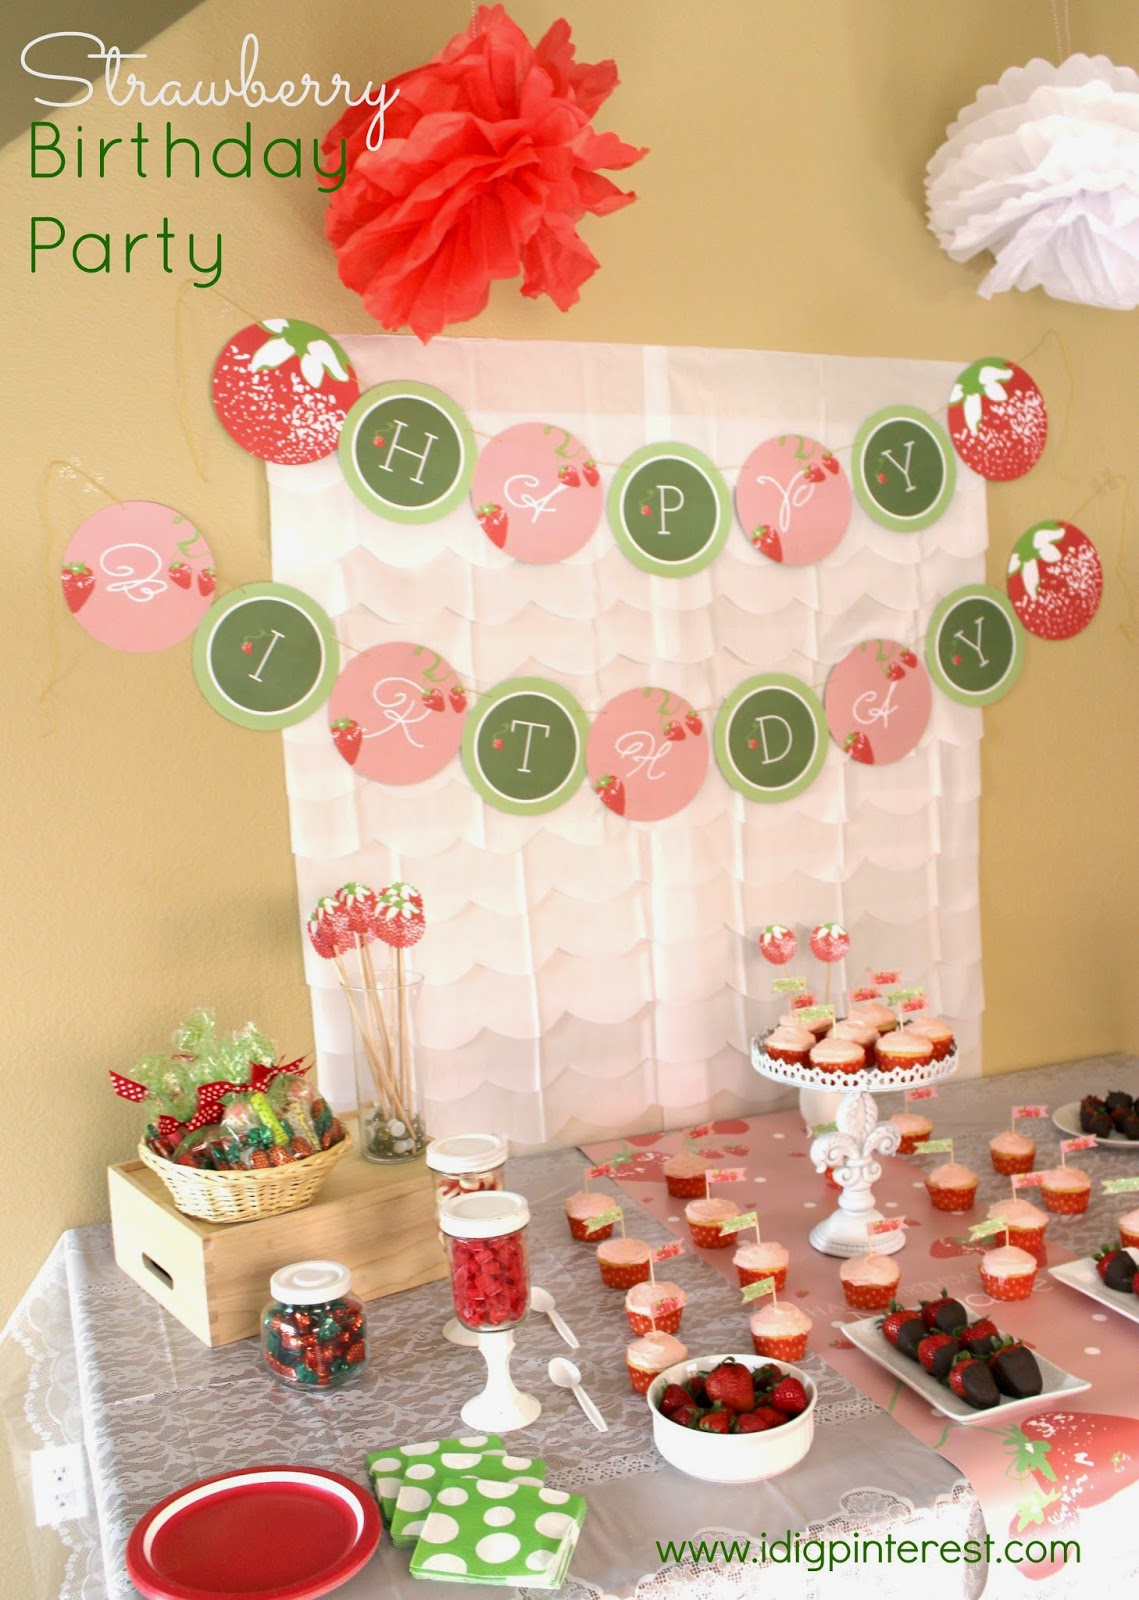 Strawberry Birthday Party - I Dig Pinterest